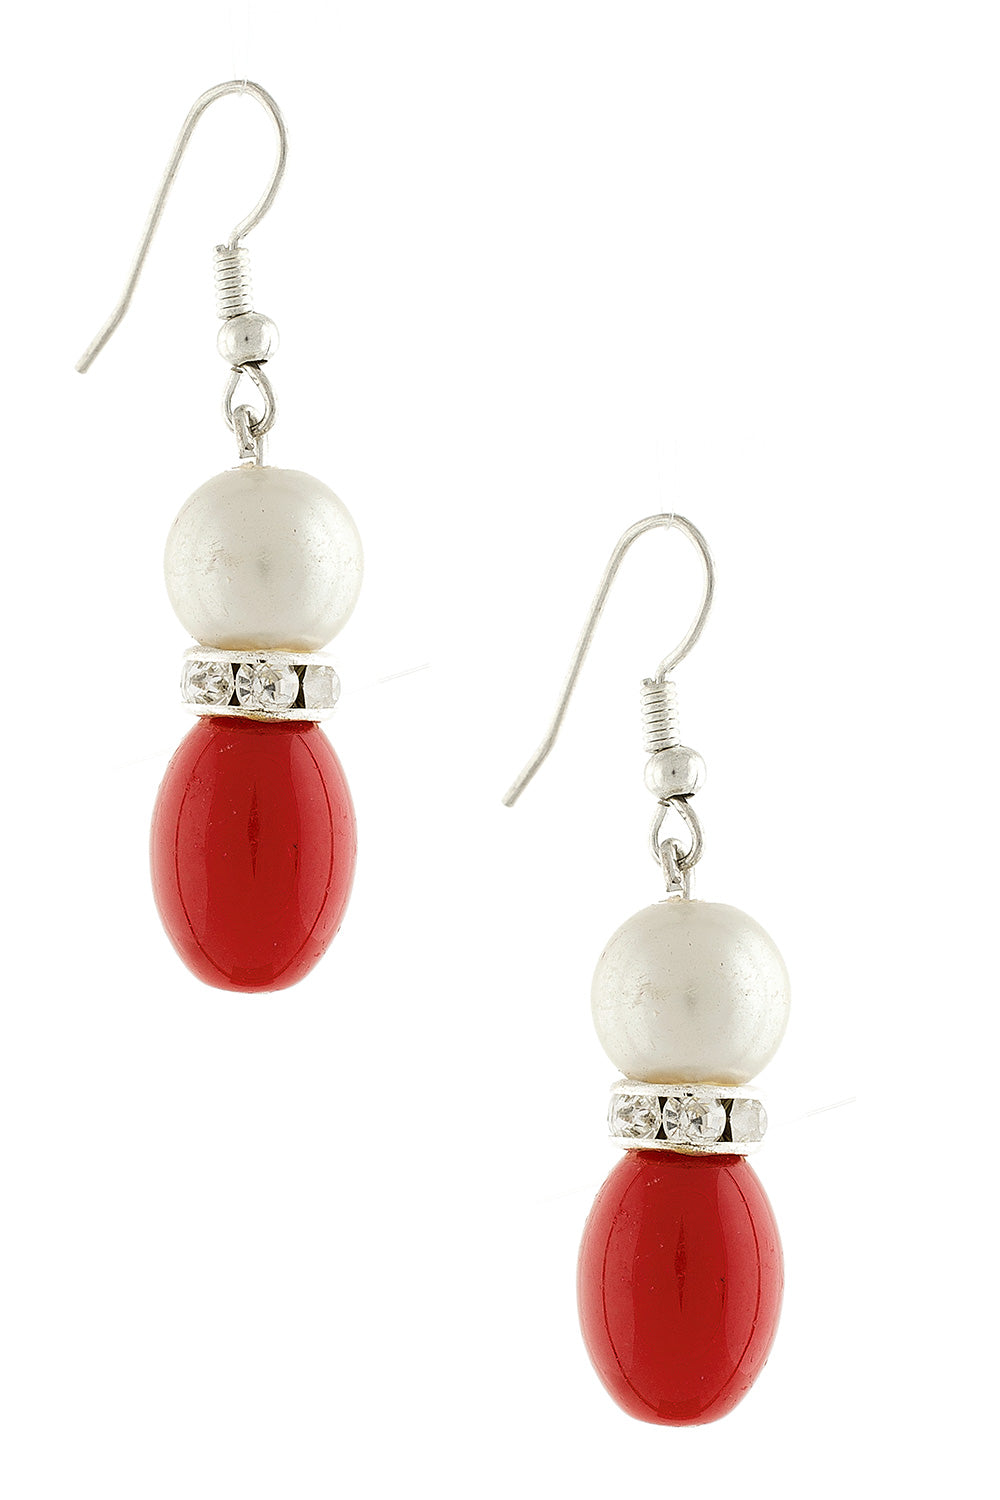 Type 4 Contempo Earrings in Red